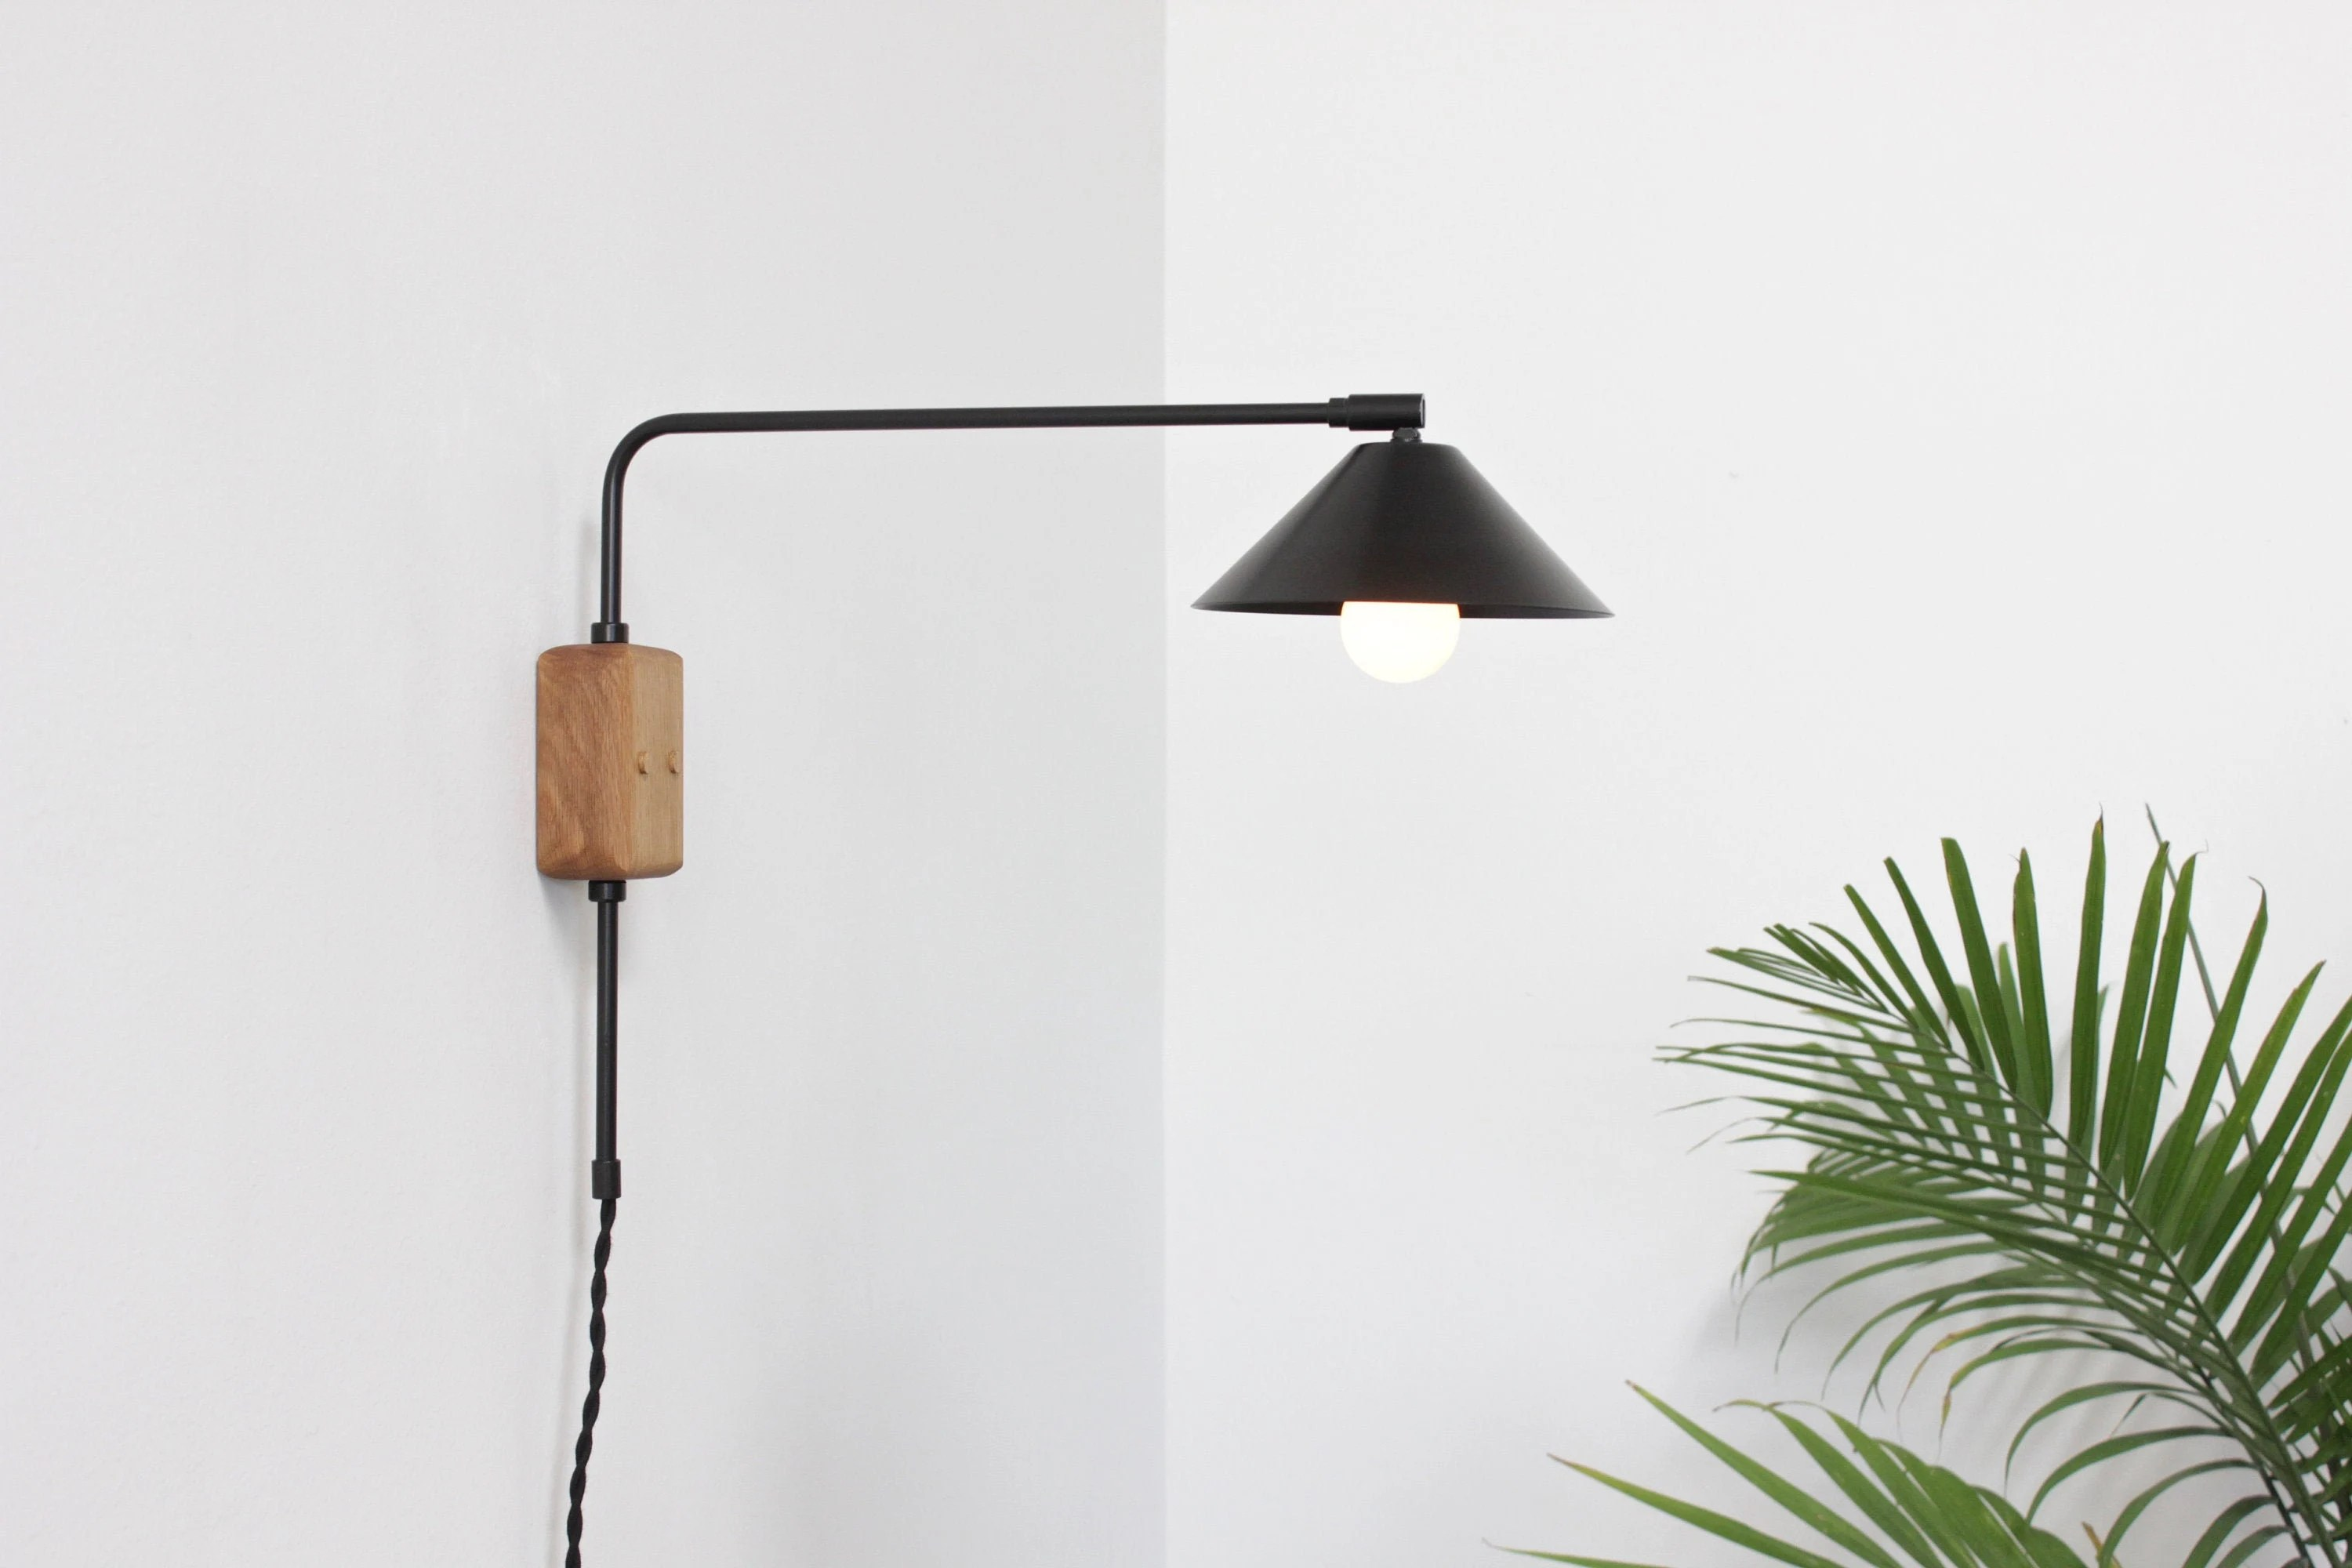 Swing Wall Lamp Plug In Sconce Swing Arm Lamp Mid Century Wall Lamp Reading Light